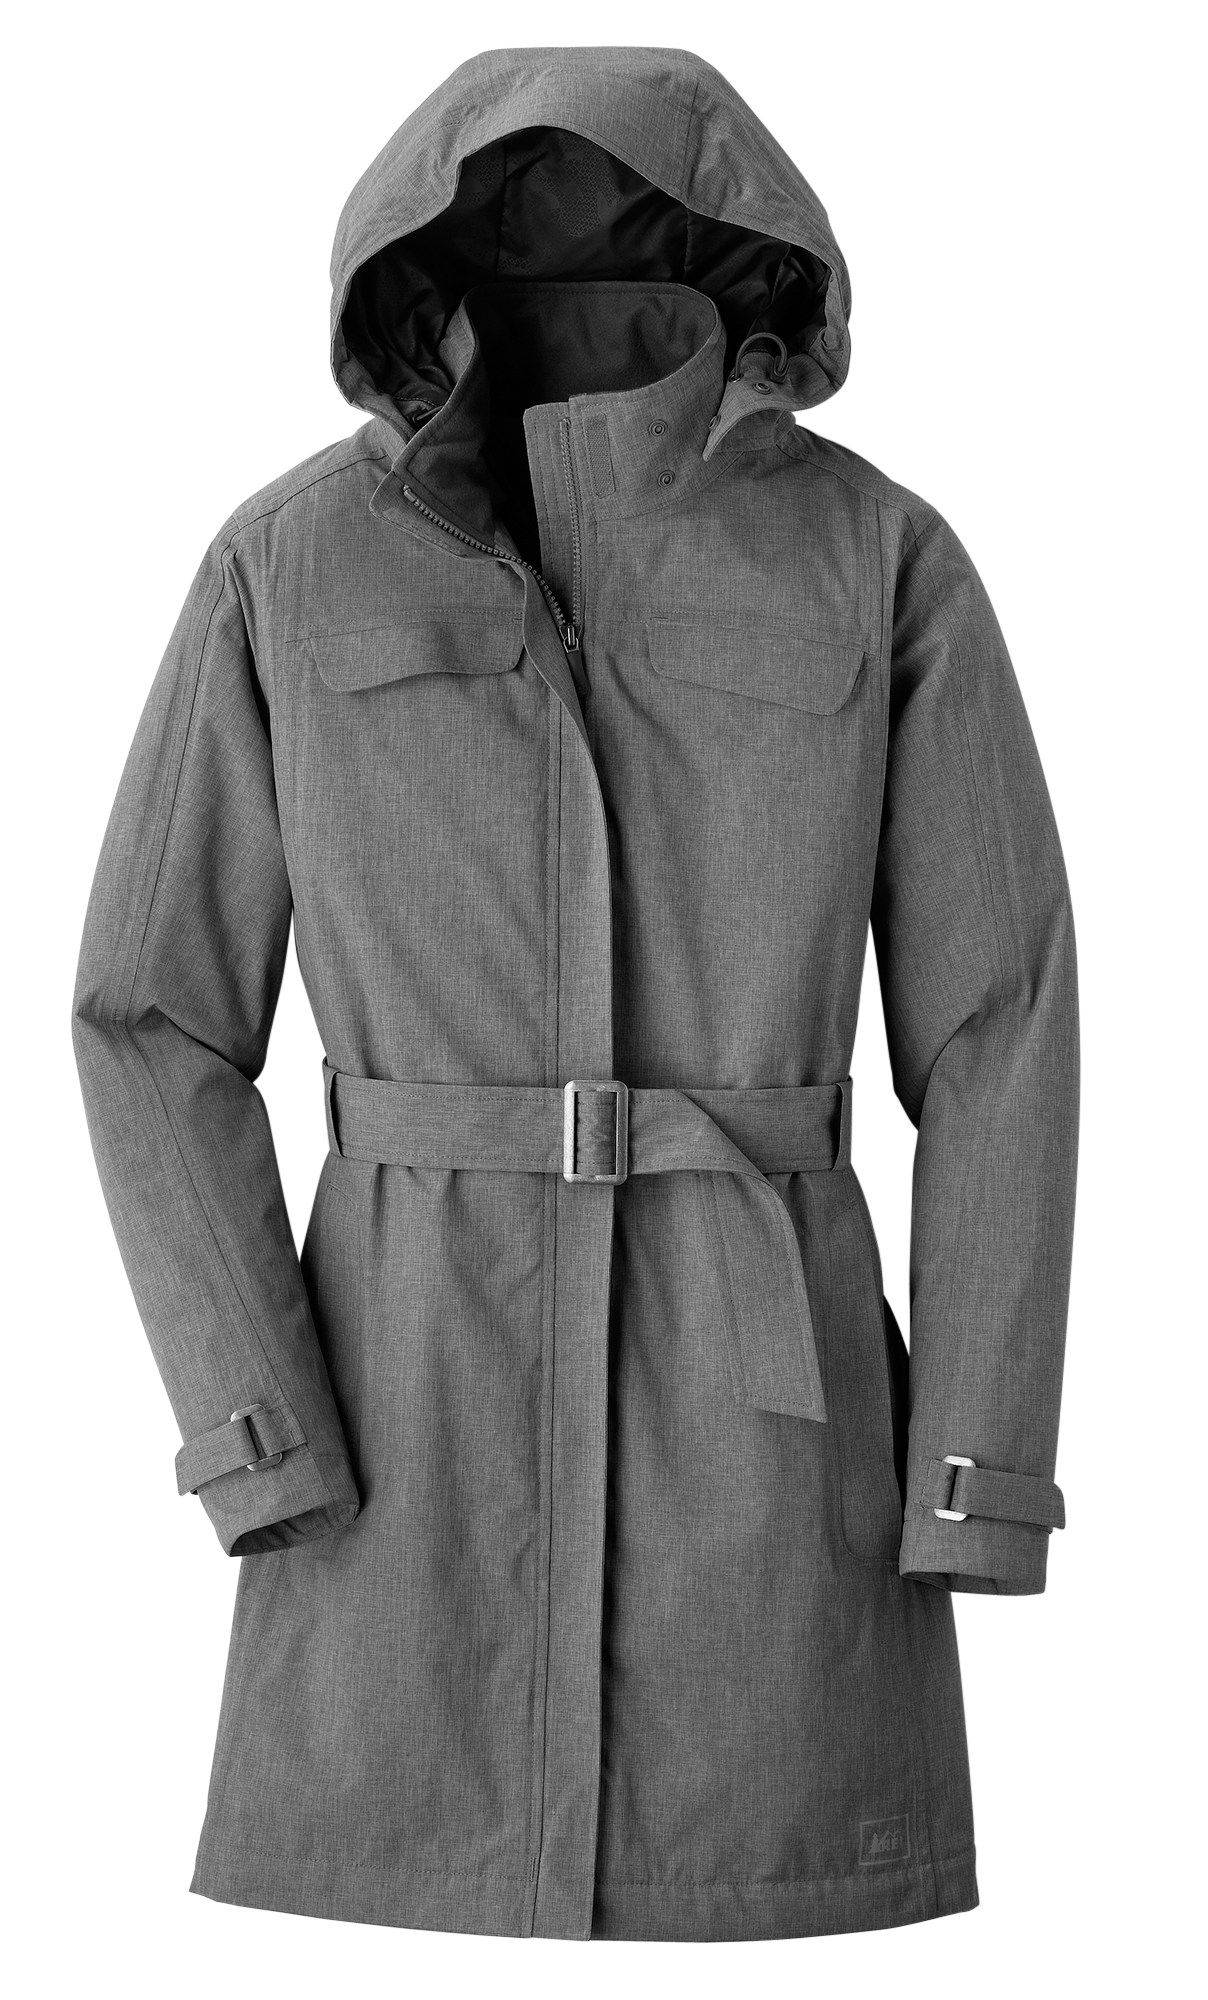 Co-op La Selva Rain Jacket - Women's | REI Co-op ...